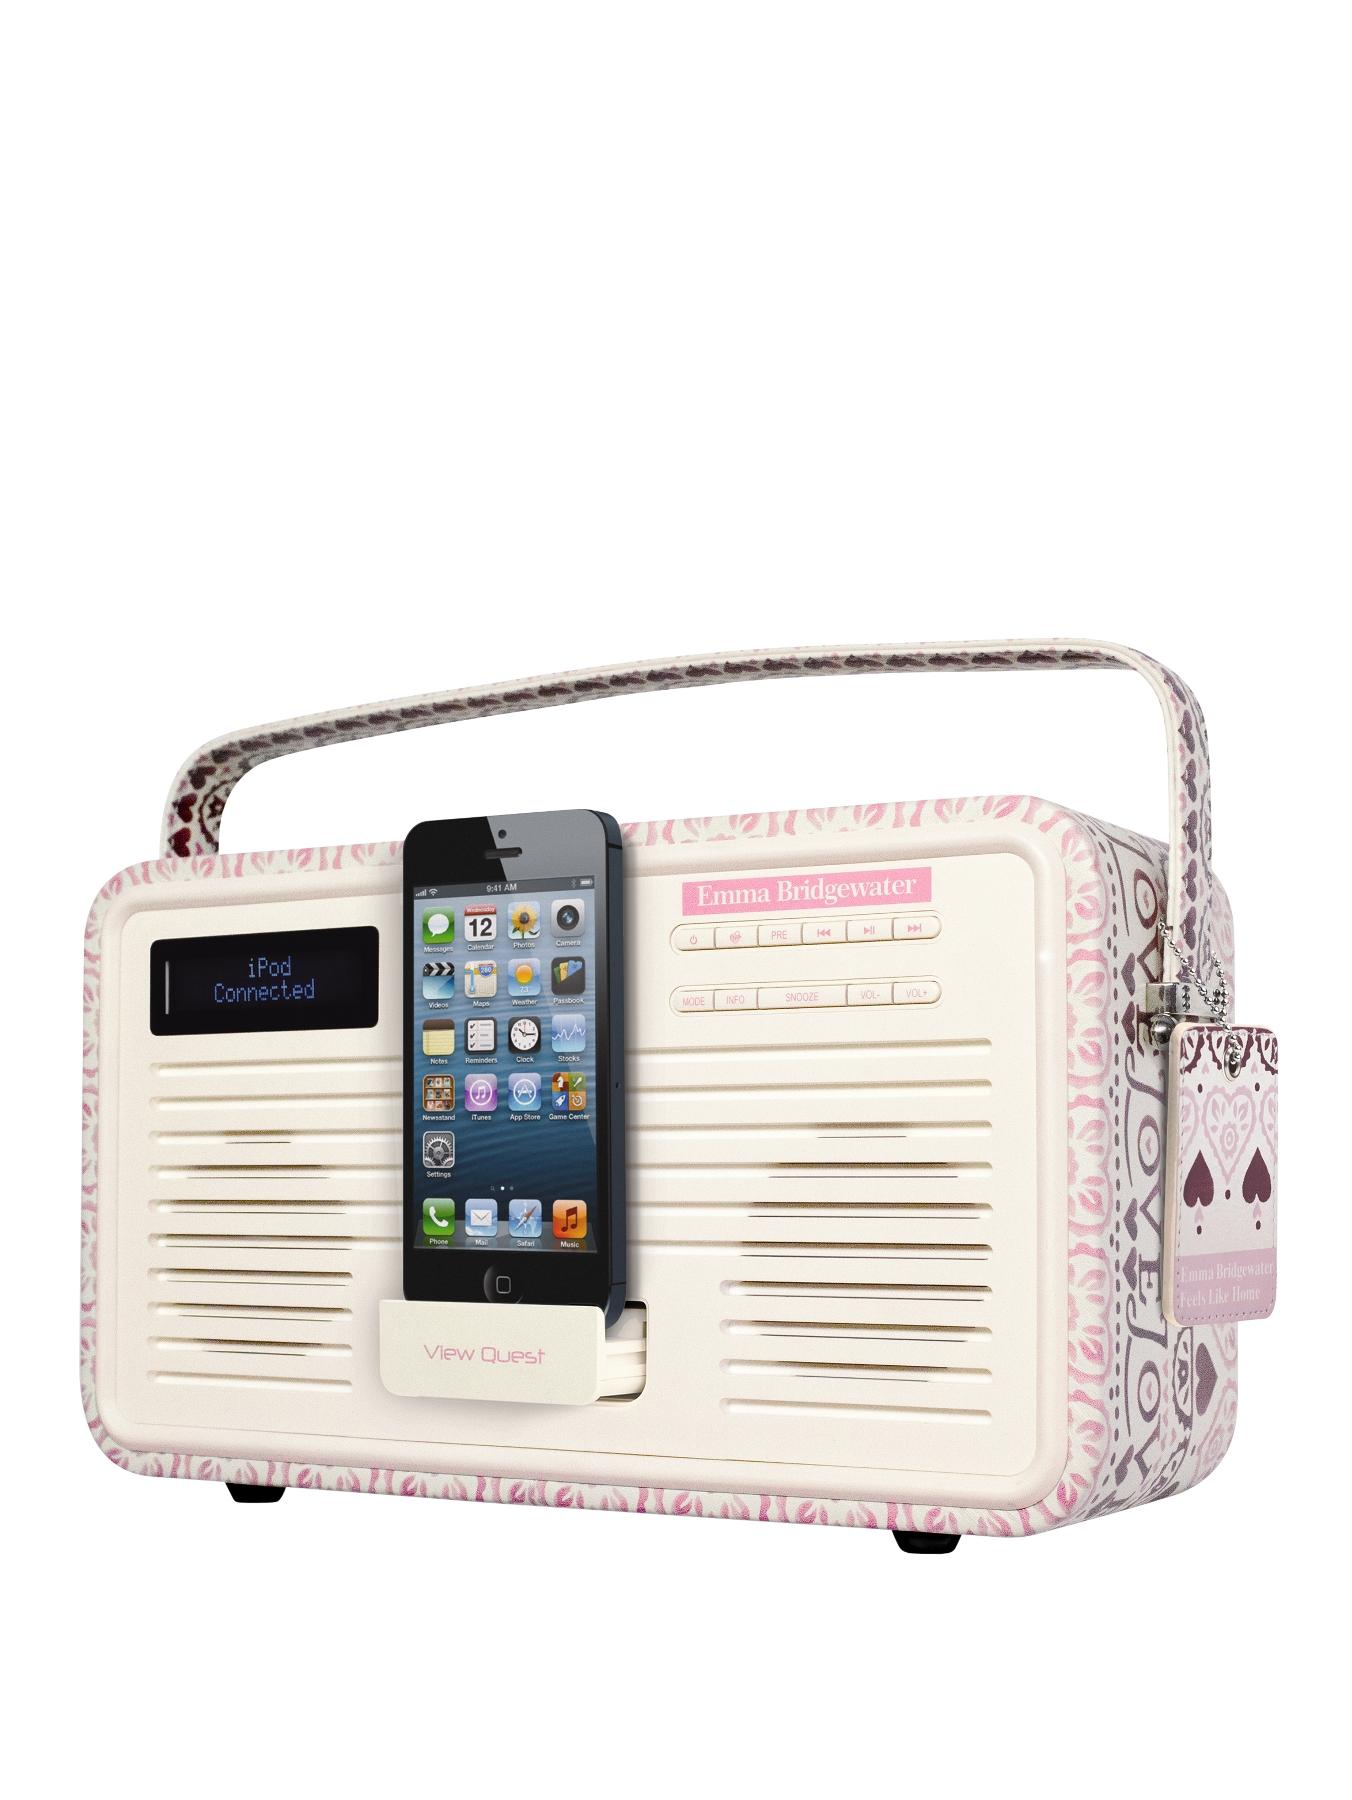 View Quest Emma Bridgewater Retro Dab Radio With 30 Pin Dock - Sampler